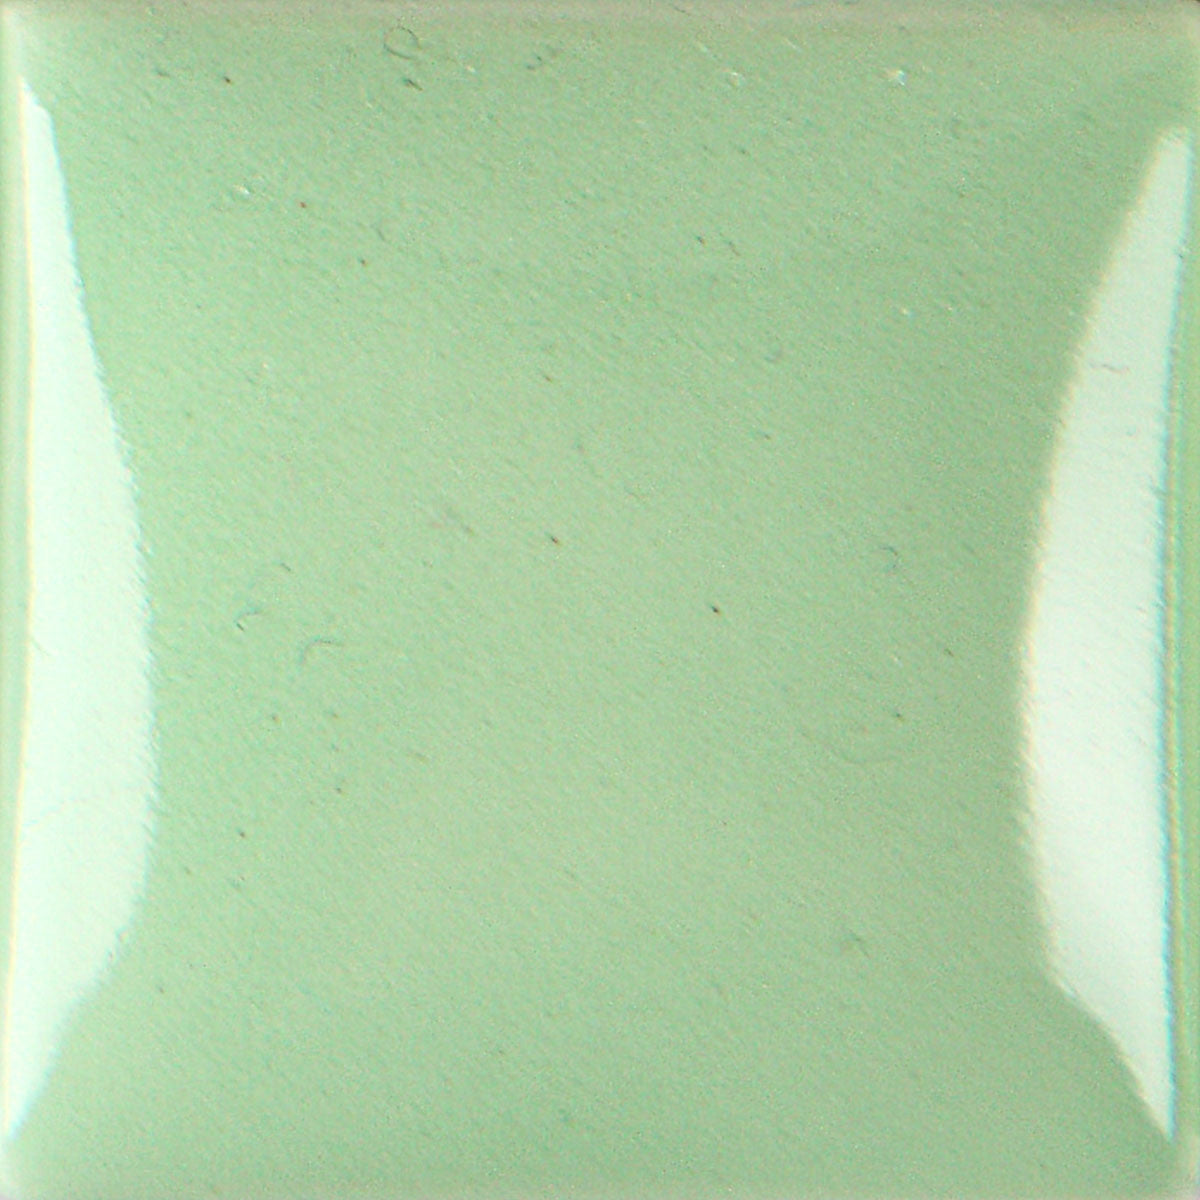 Duncan IN1057 Iced Mint Envision Glaze